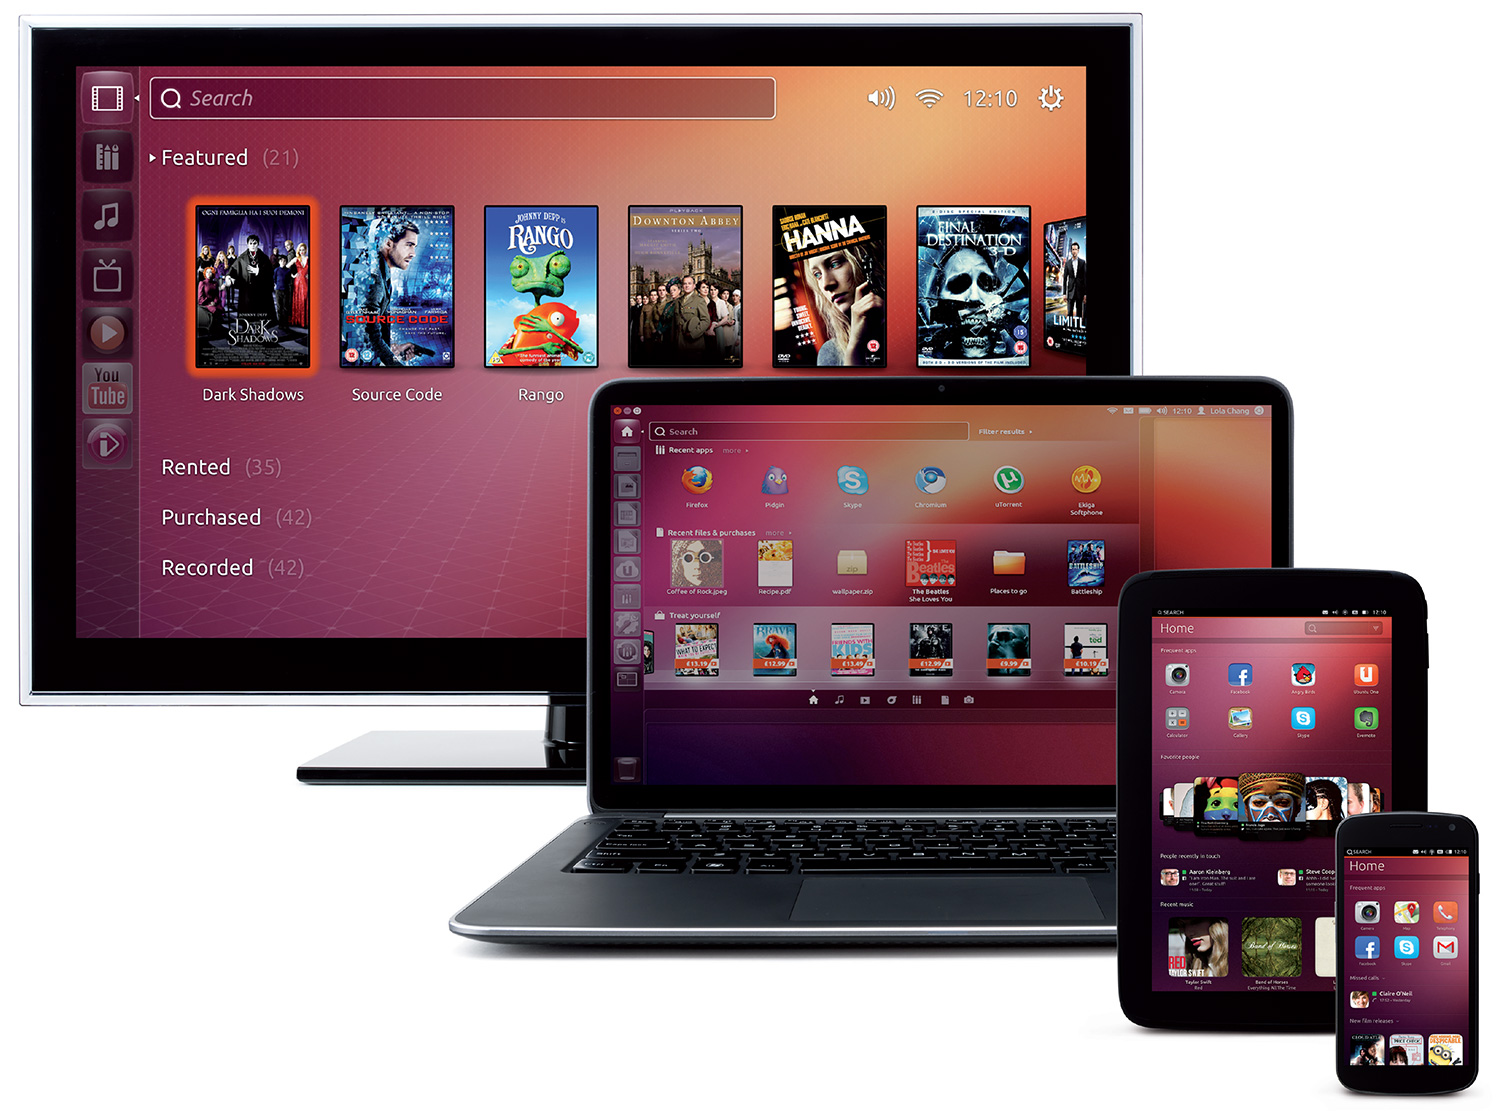 ubuntu-tv-pc-smartphone-tablet